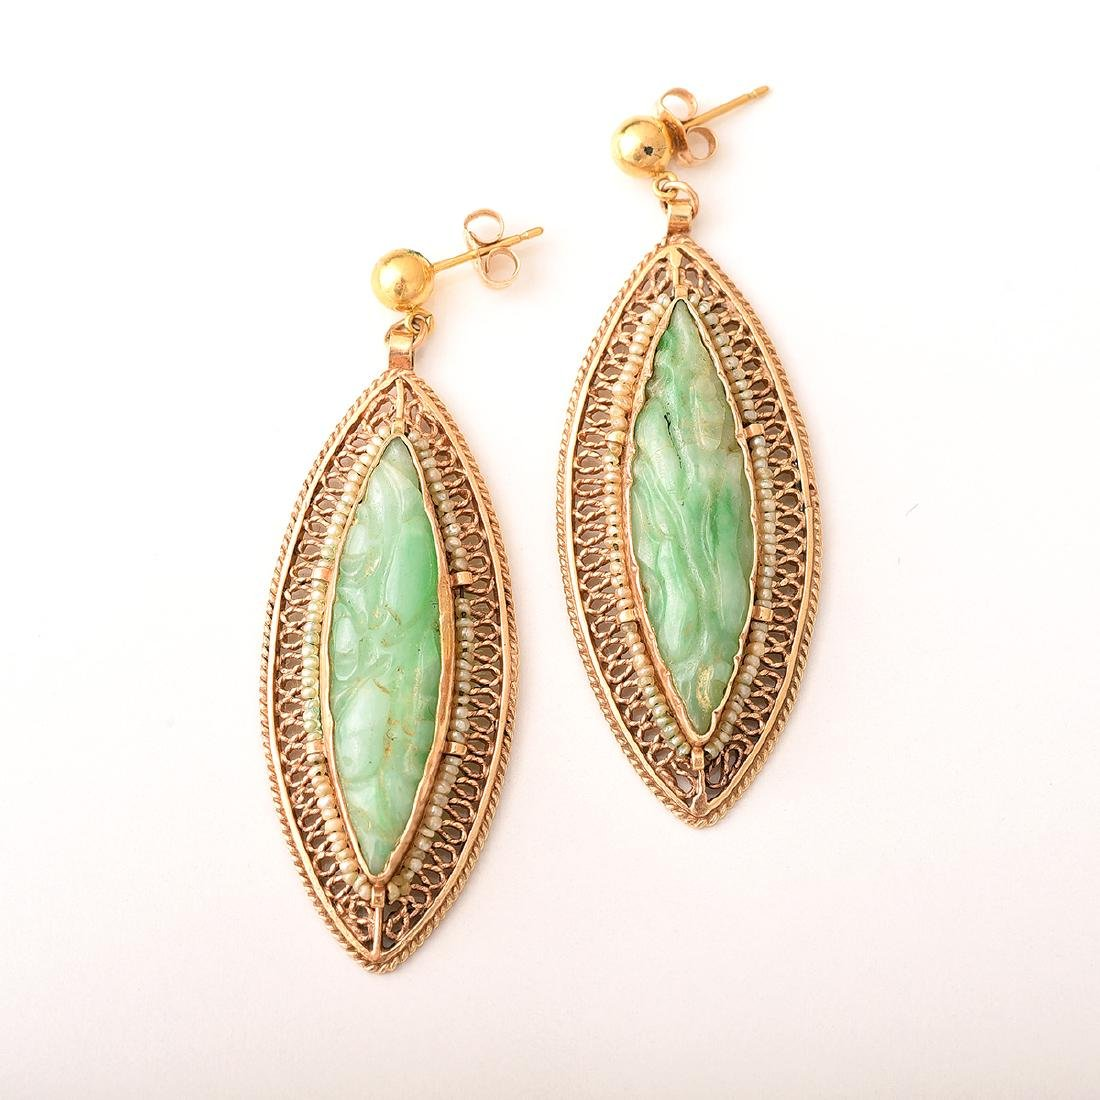 Jade, Seed Pearl, 14k Yellow Gold Jewelry Suite. - 2